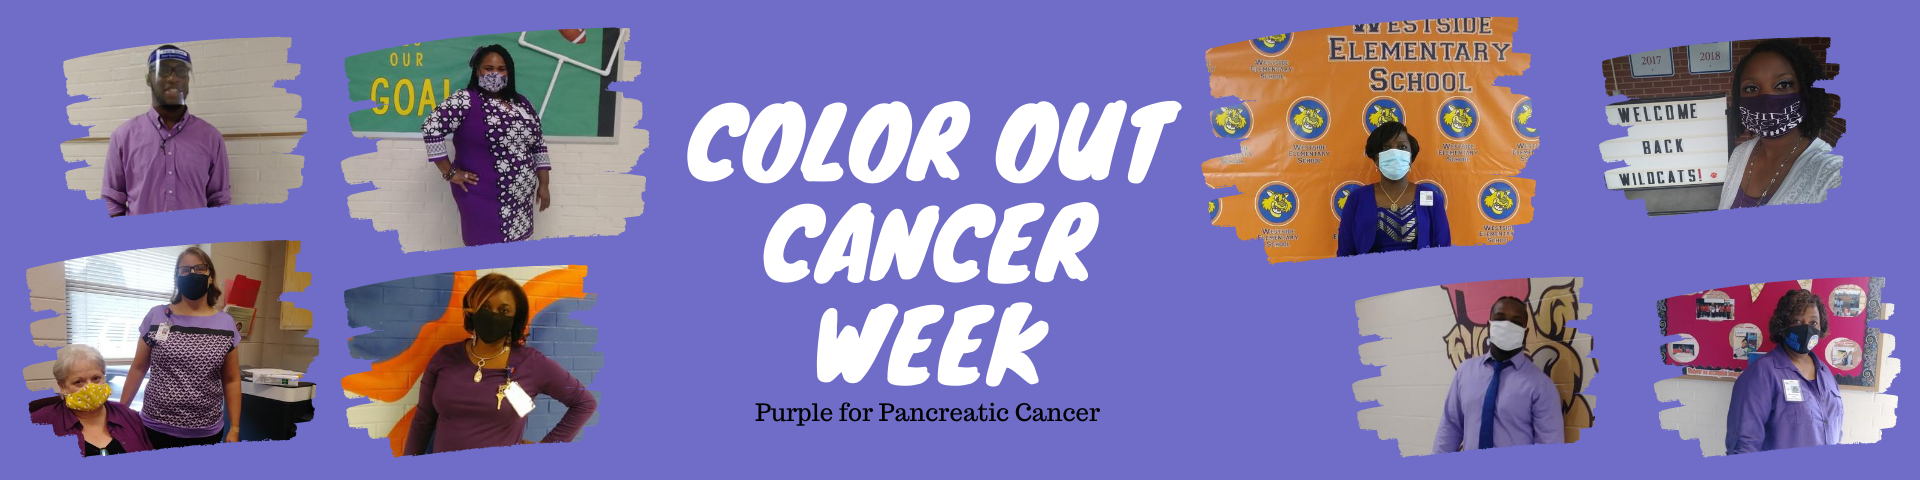 Color Out Cancer Week Pancreatic Cancer